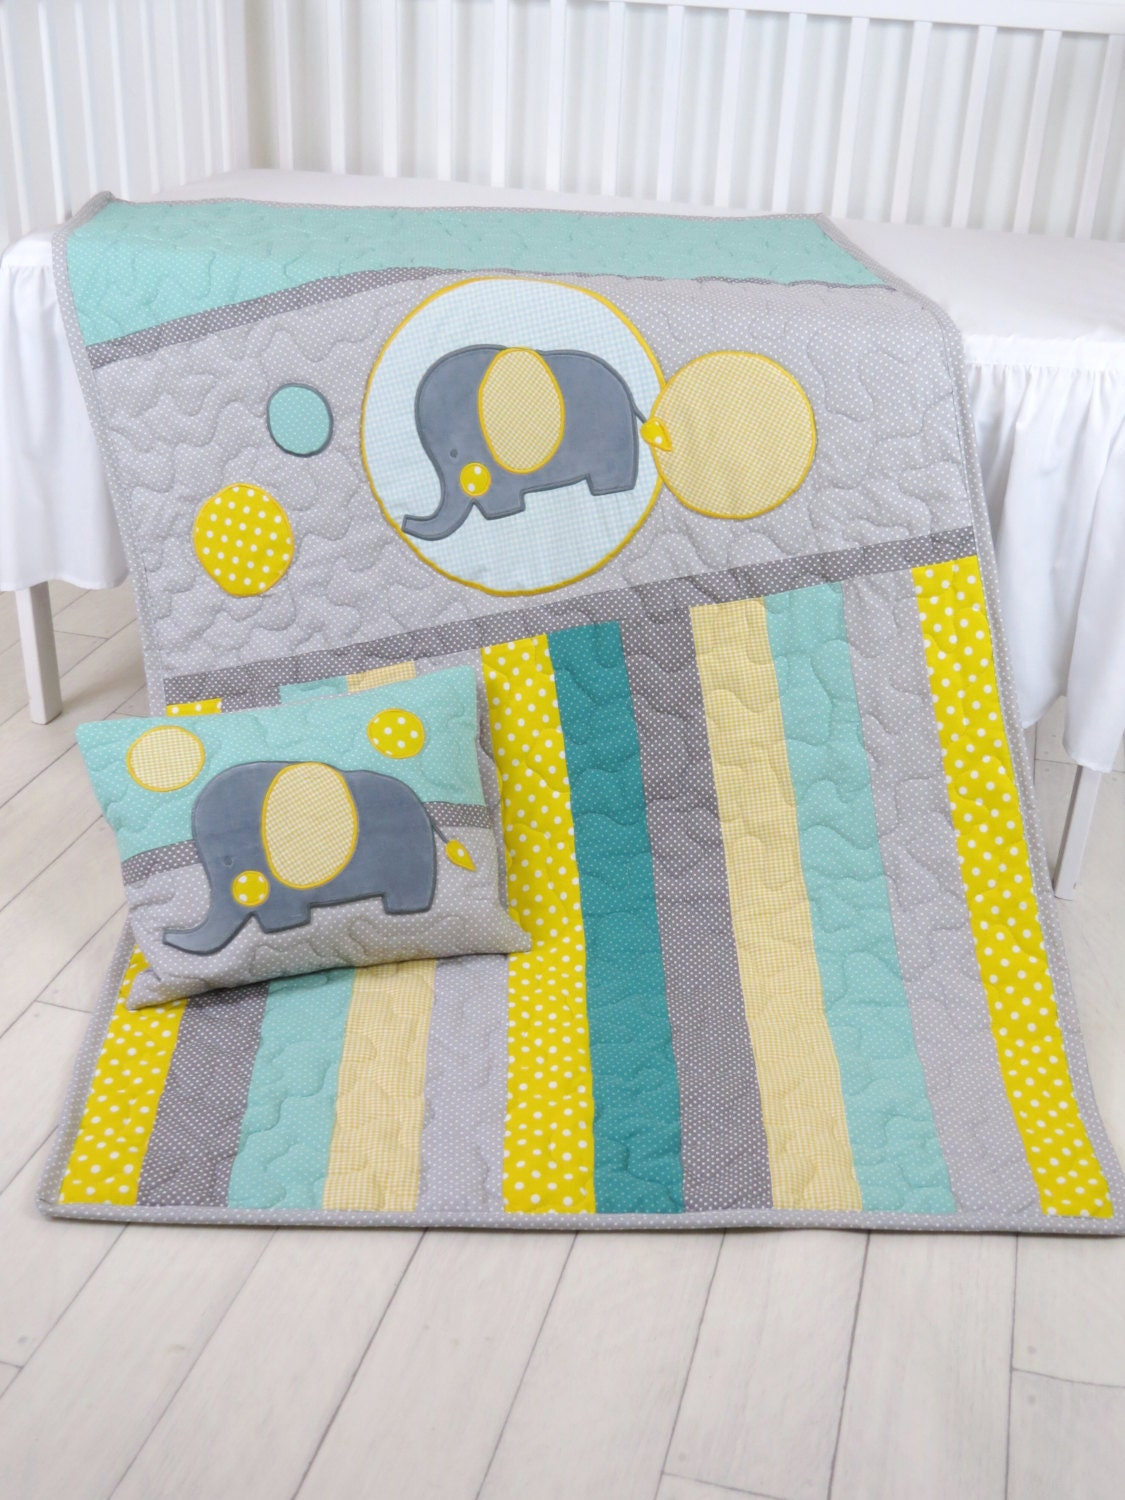 Baby Blanket Teal Gray Crib Quilt Elephant Bedding For Baby